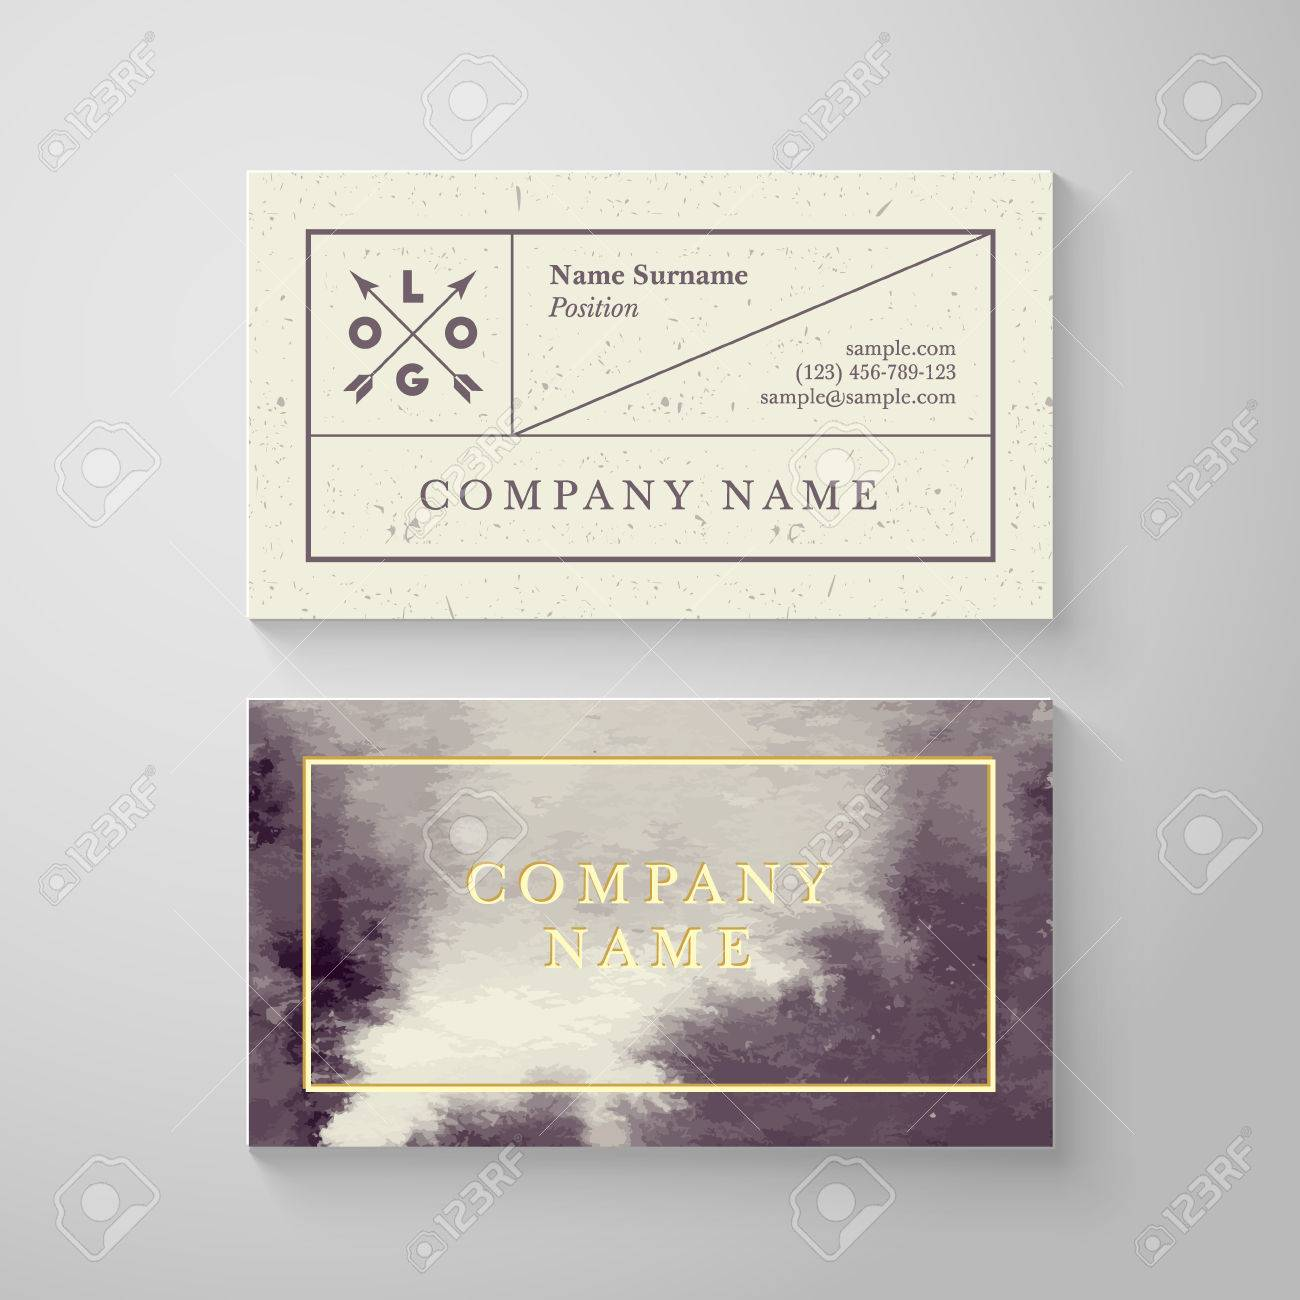 Business card images free image collections free business cards business card stock photos pictures royalty free business card trendy watercolor cross processing business card template magicingreecefo Images